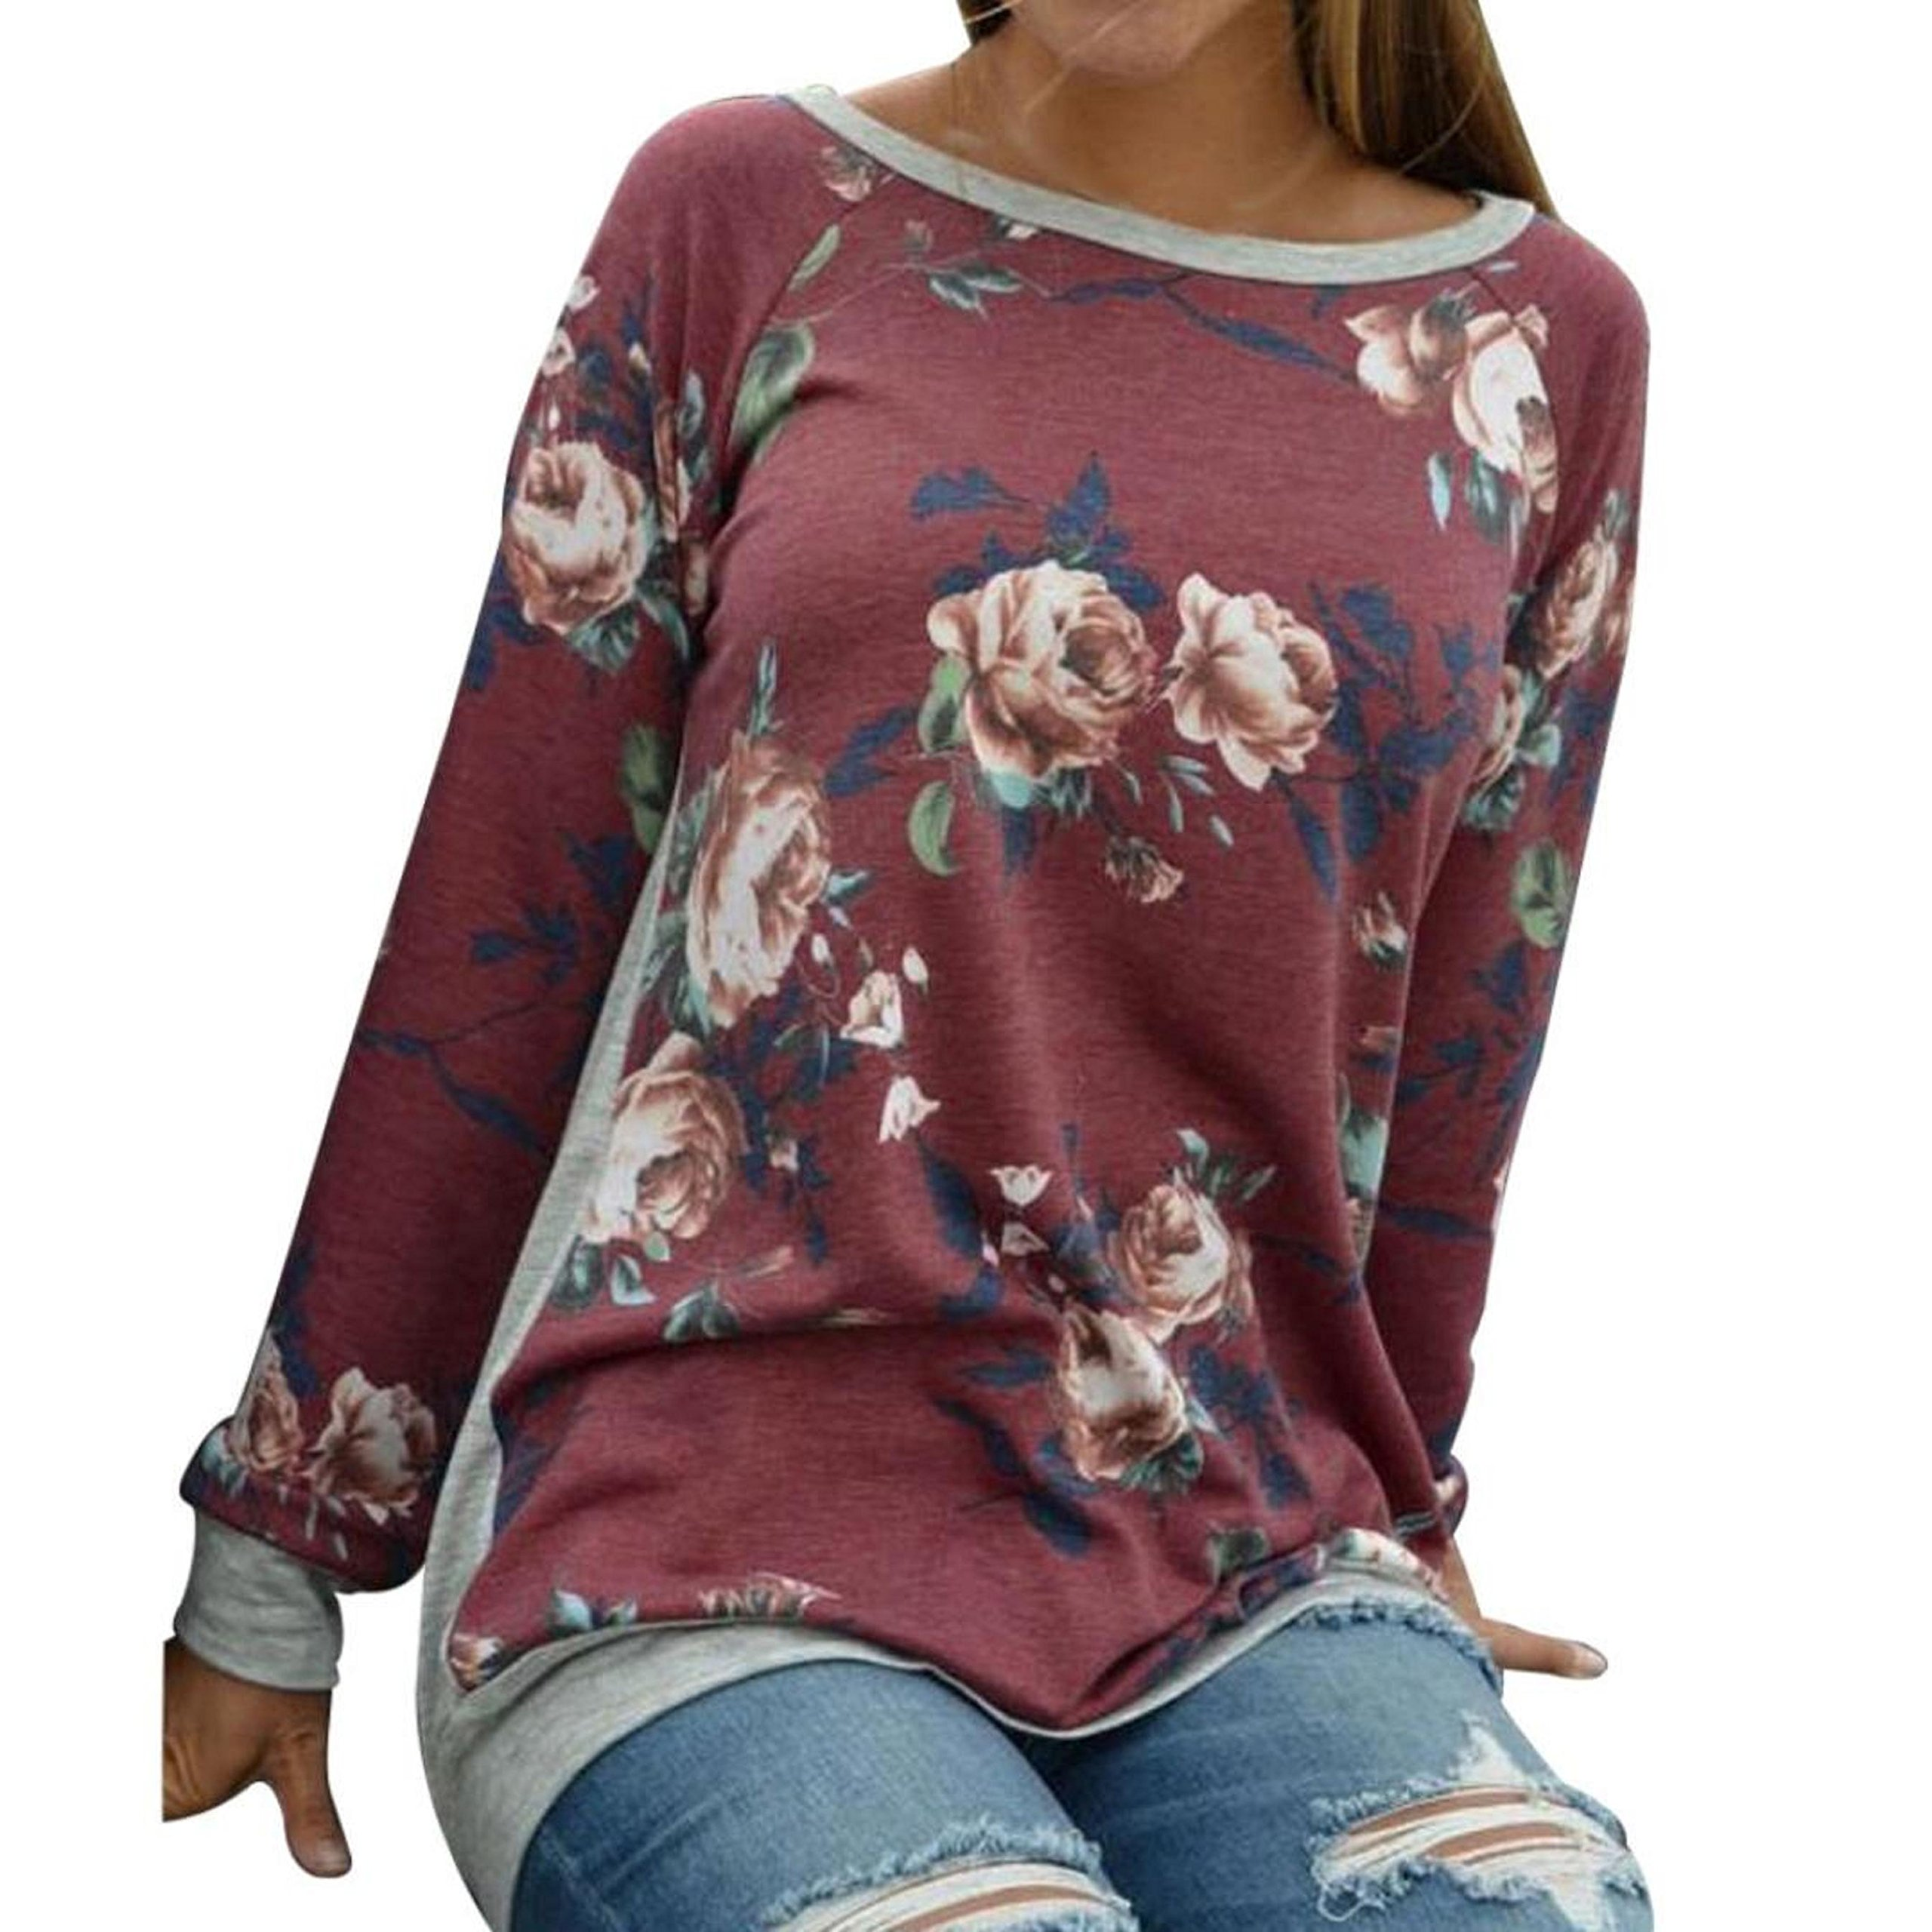 PPBUY Women Autumn Floral Printing Long Sleeve Shirt Casual Top Blouse (XL, Red) by PPBUY (Image #1)